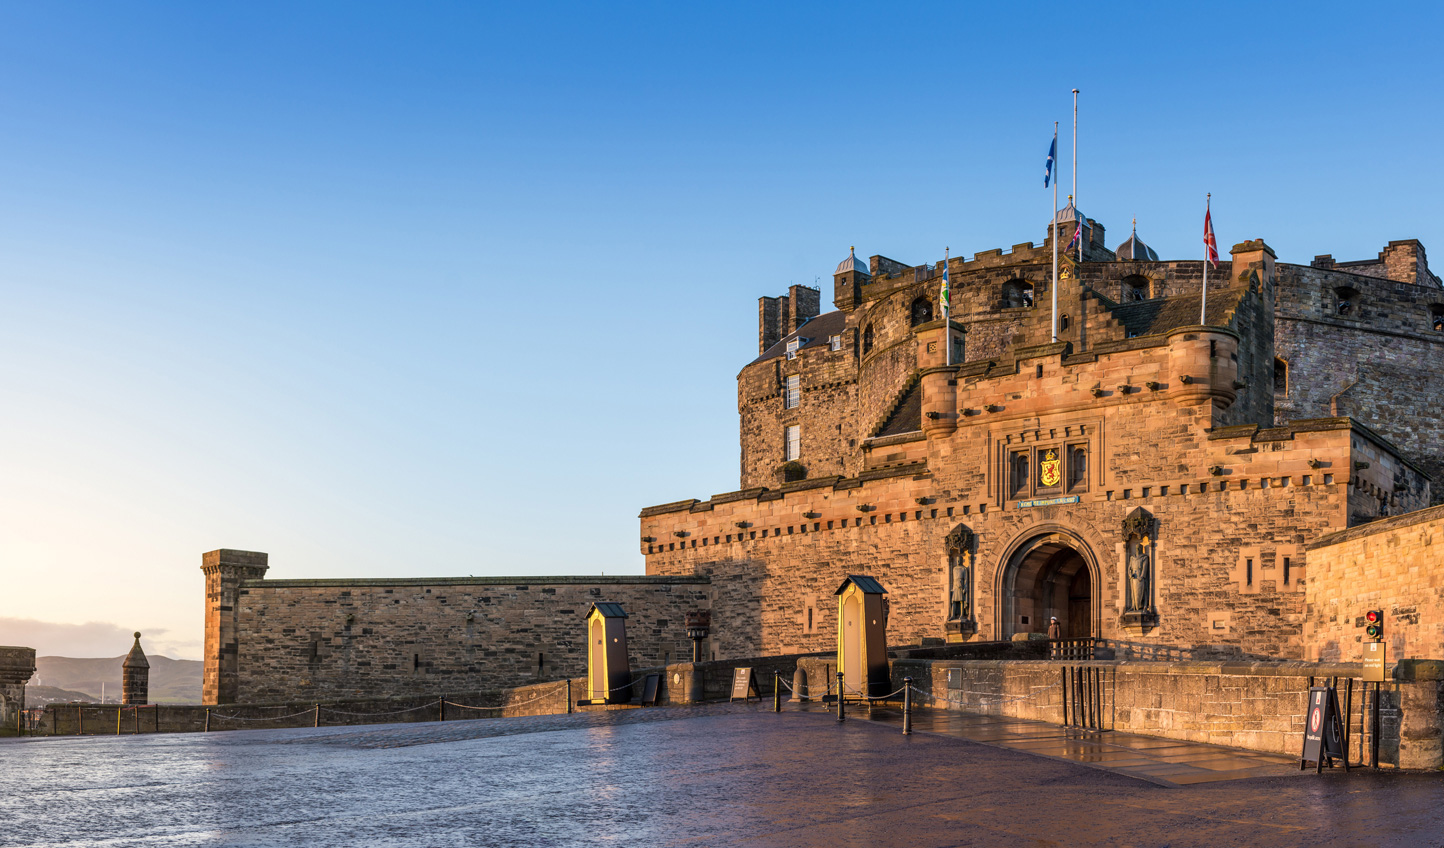 Explore Edinburgh Castle, keeping an eye out for ghosts and poltergeists